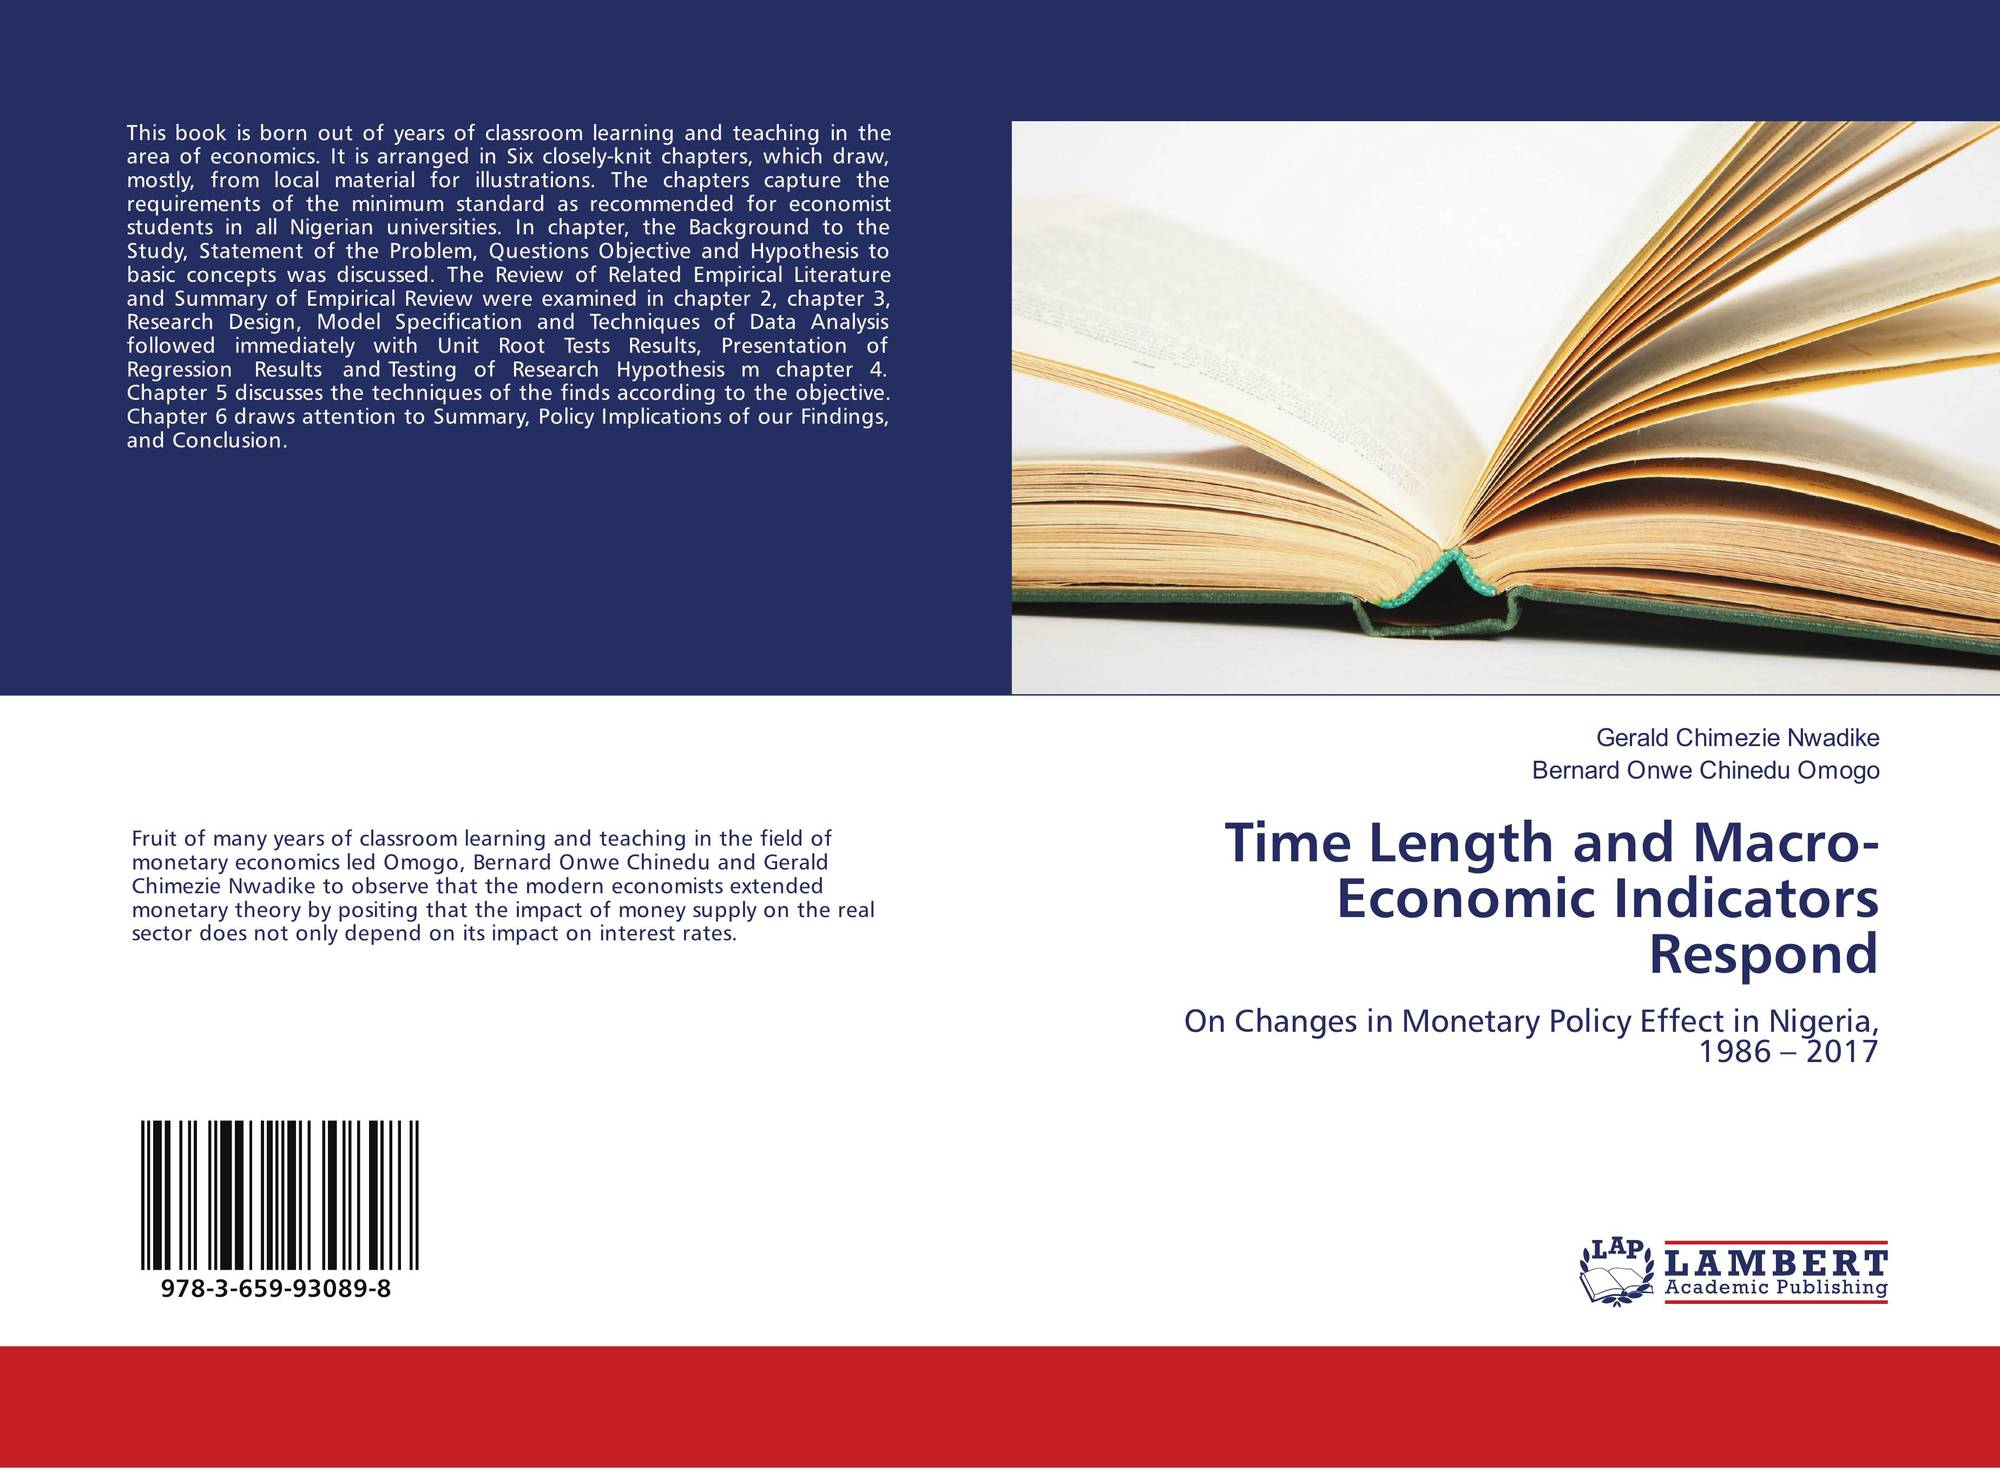 Time Length and Macro-Economic Indicators Respond, 978-3-659-93089-8